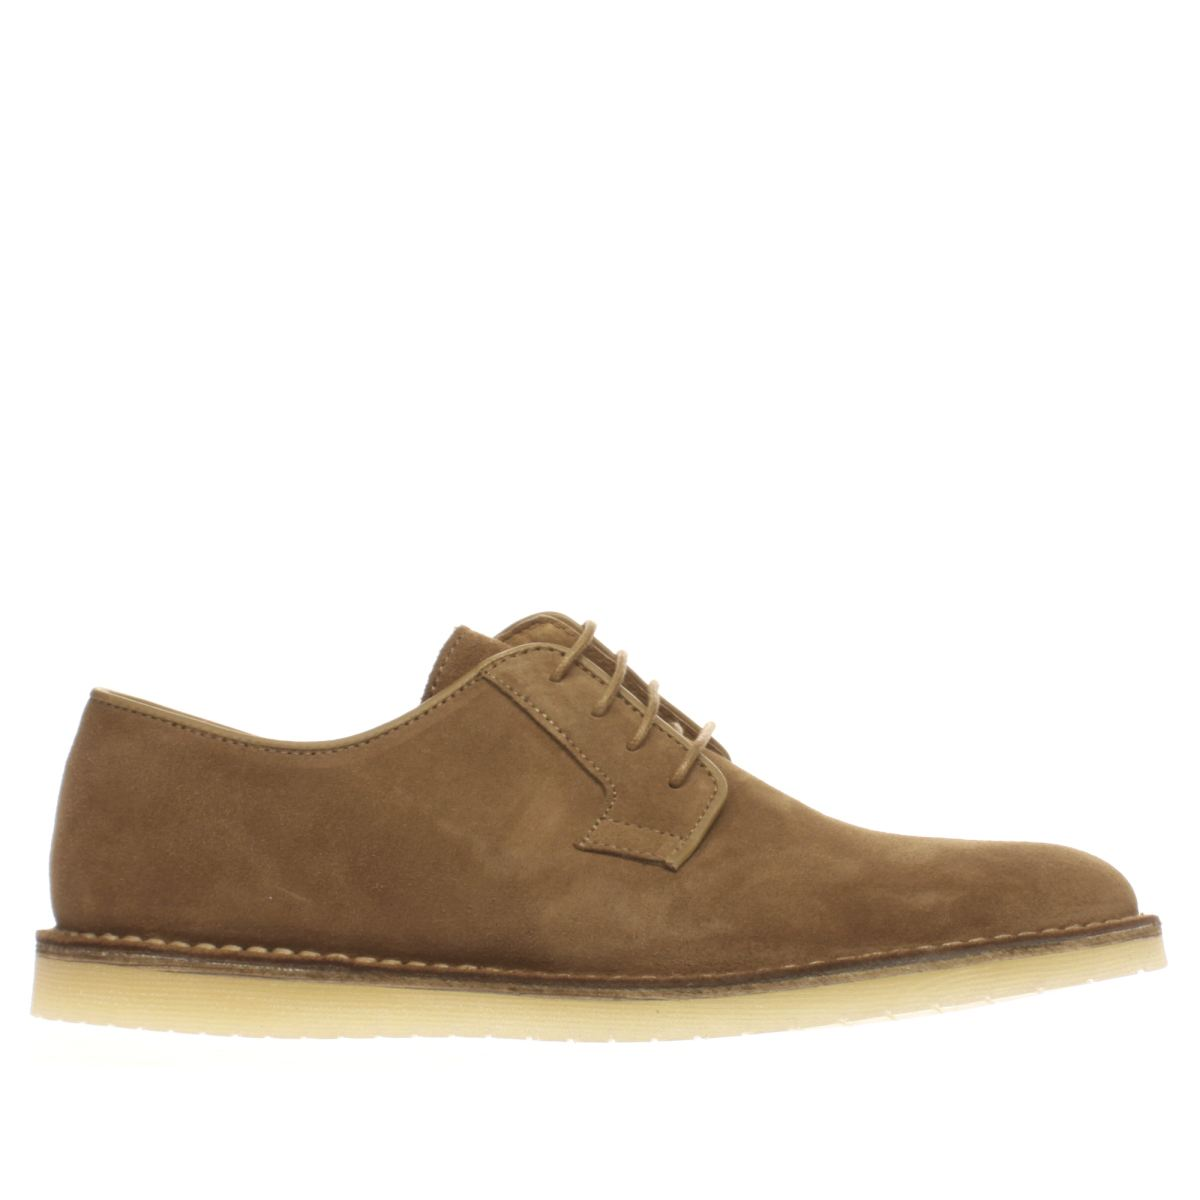 momentum Momentum Tan Pasadena Derby Shoes